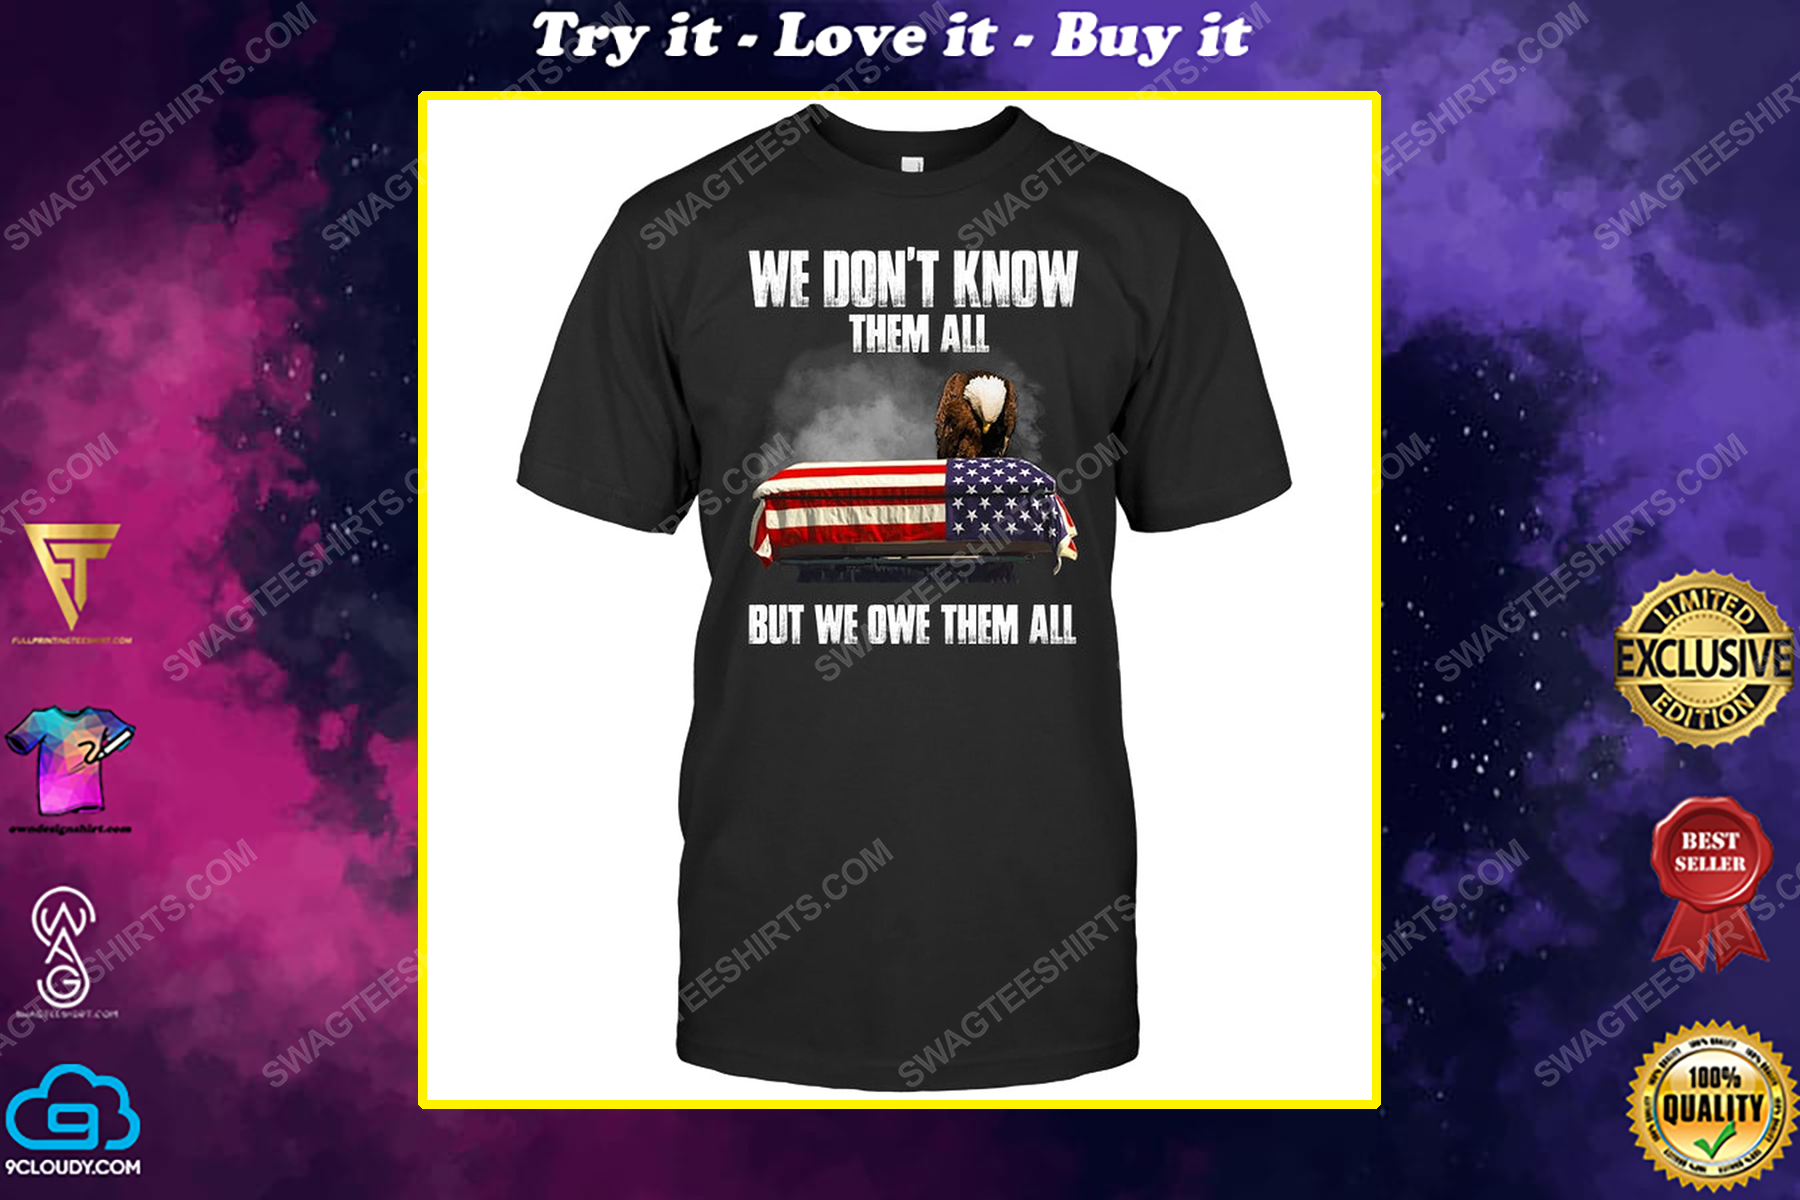 We don't know them all but we owe them all political shirt